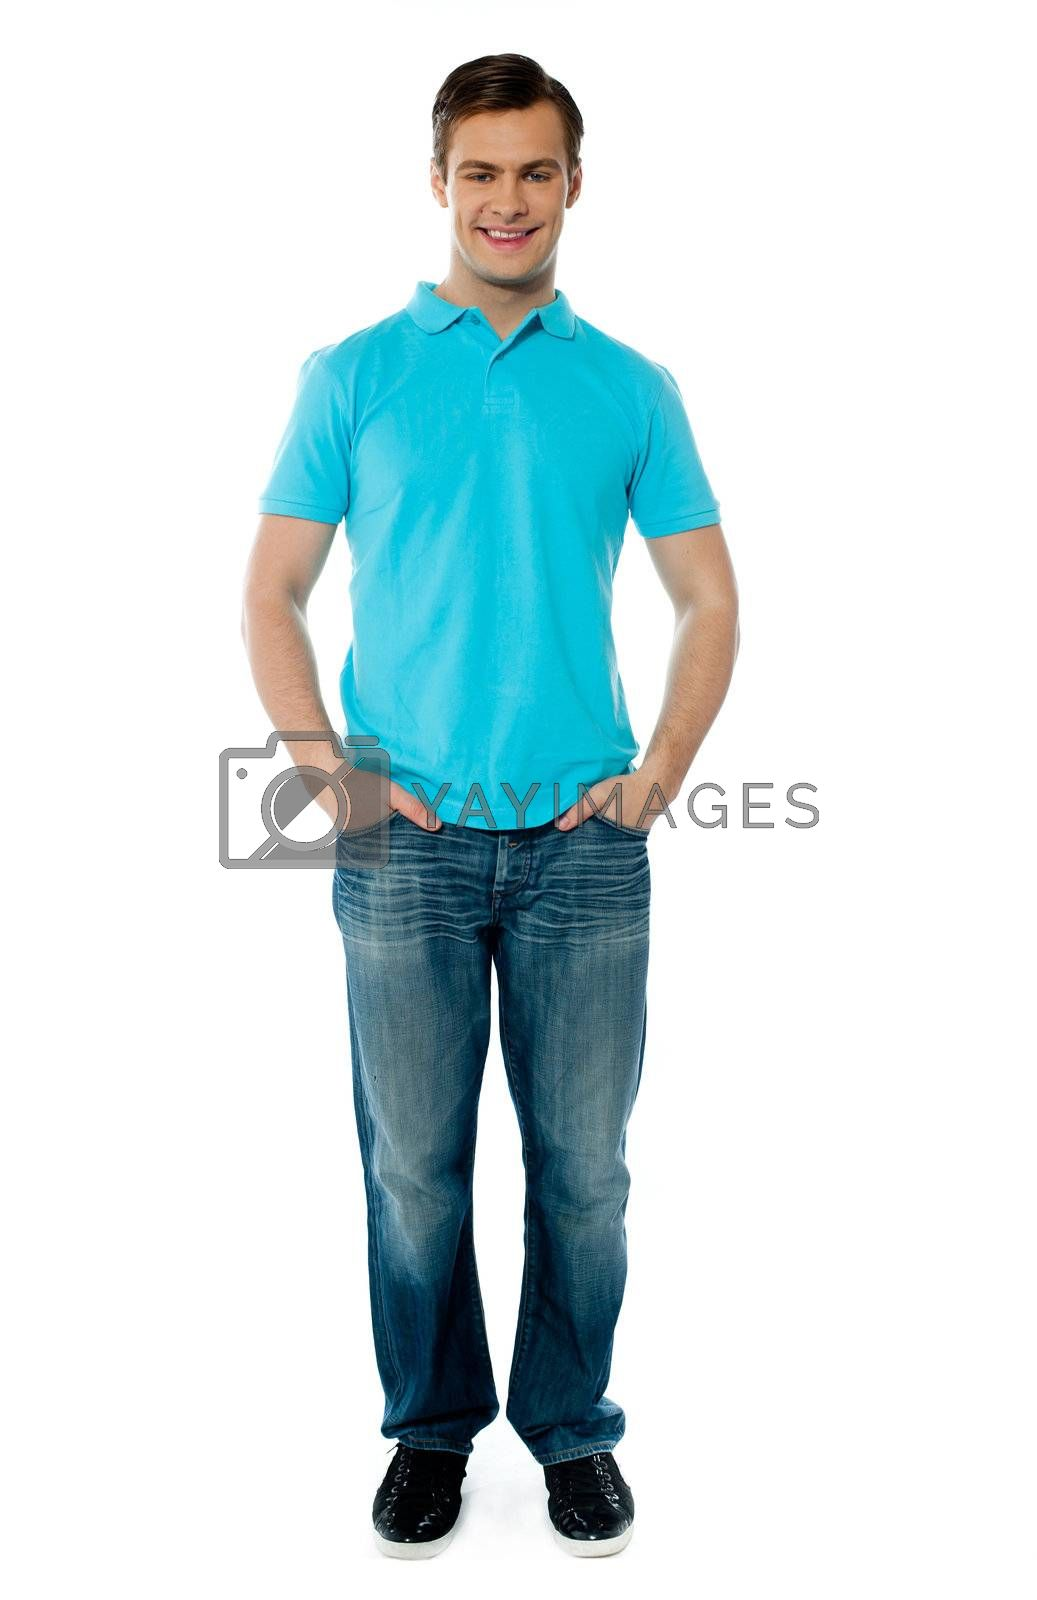 Portait of smiling cool young guy standing with arms in his pocket